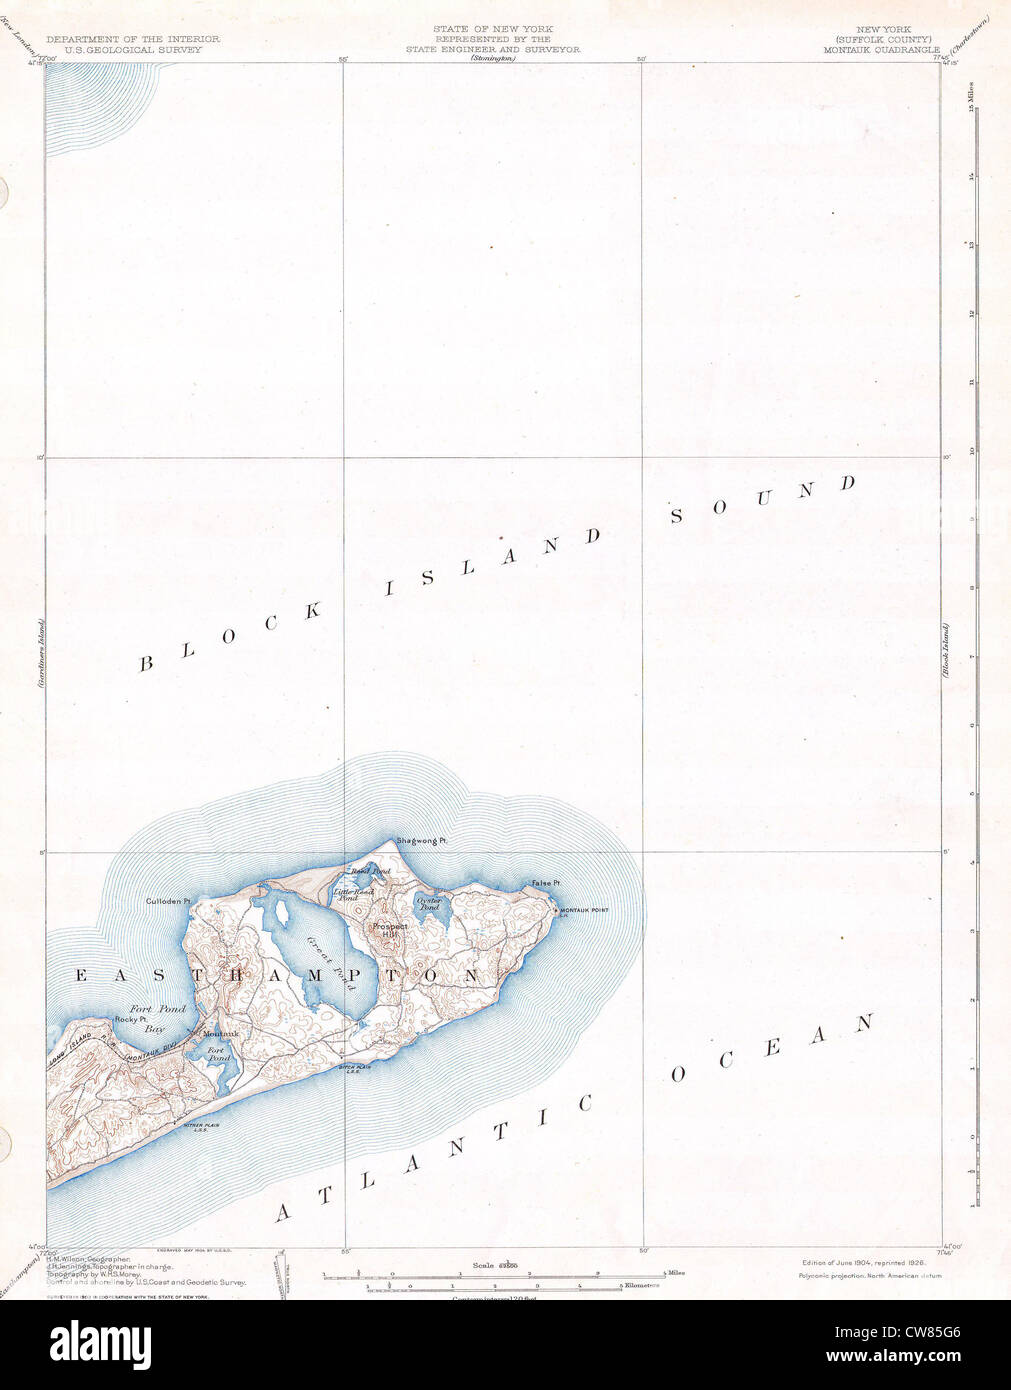 1904 U.S.G.S. Map of Long Island, New York ( Montauk ^ Easthampton) - Stock Image